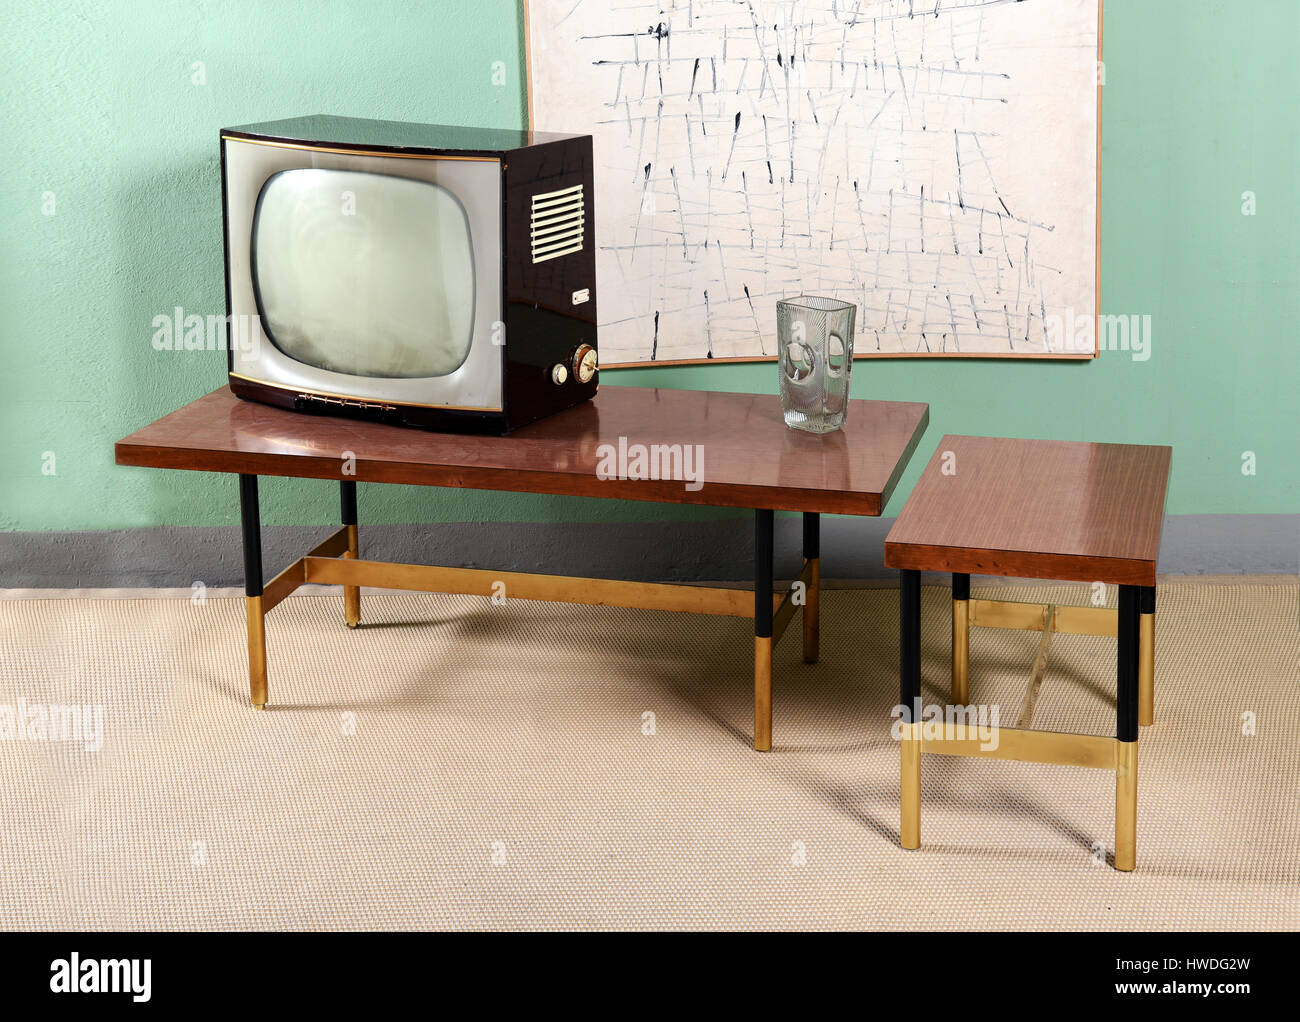 Retro Living Room With Furniture Still Life   Old Television On Table With  Glass Vase In Painted Green Room With Abstract Wall Art And Beige Carpet